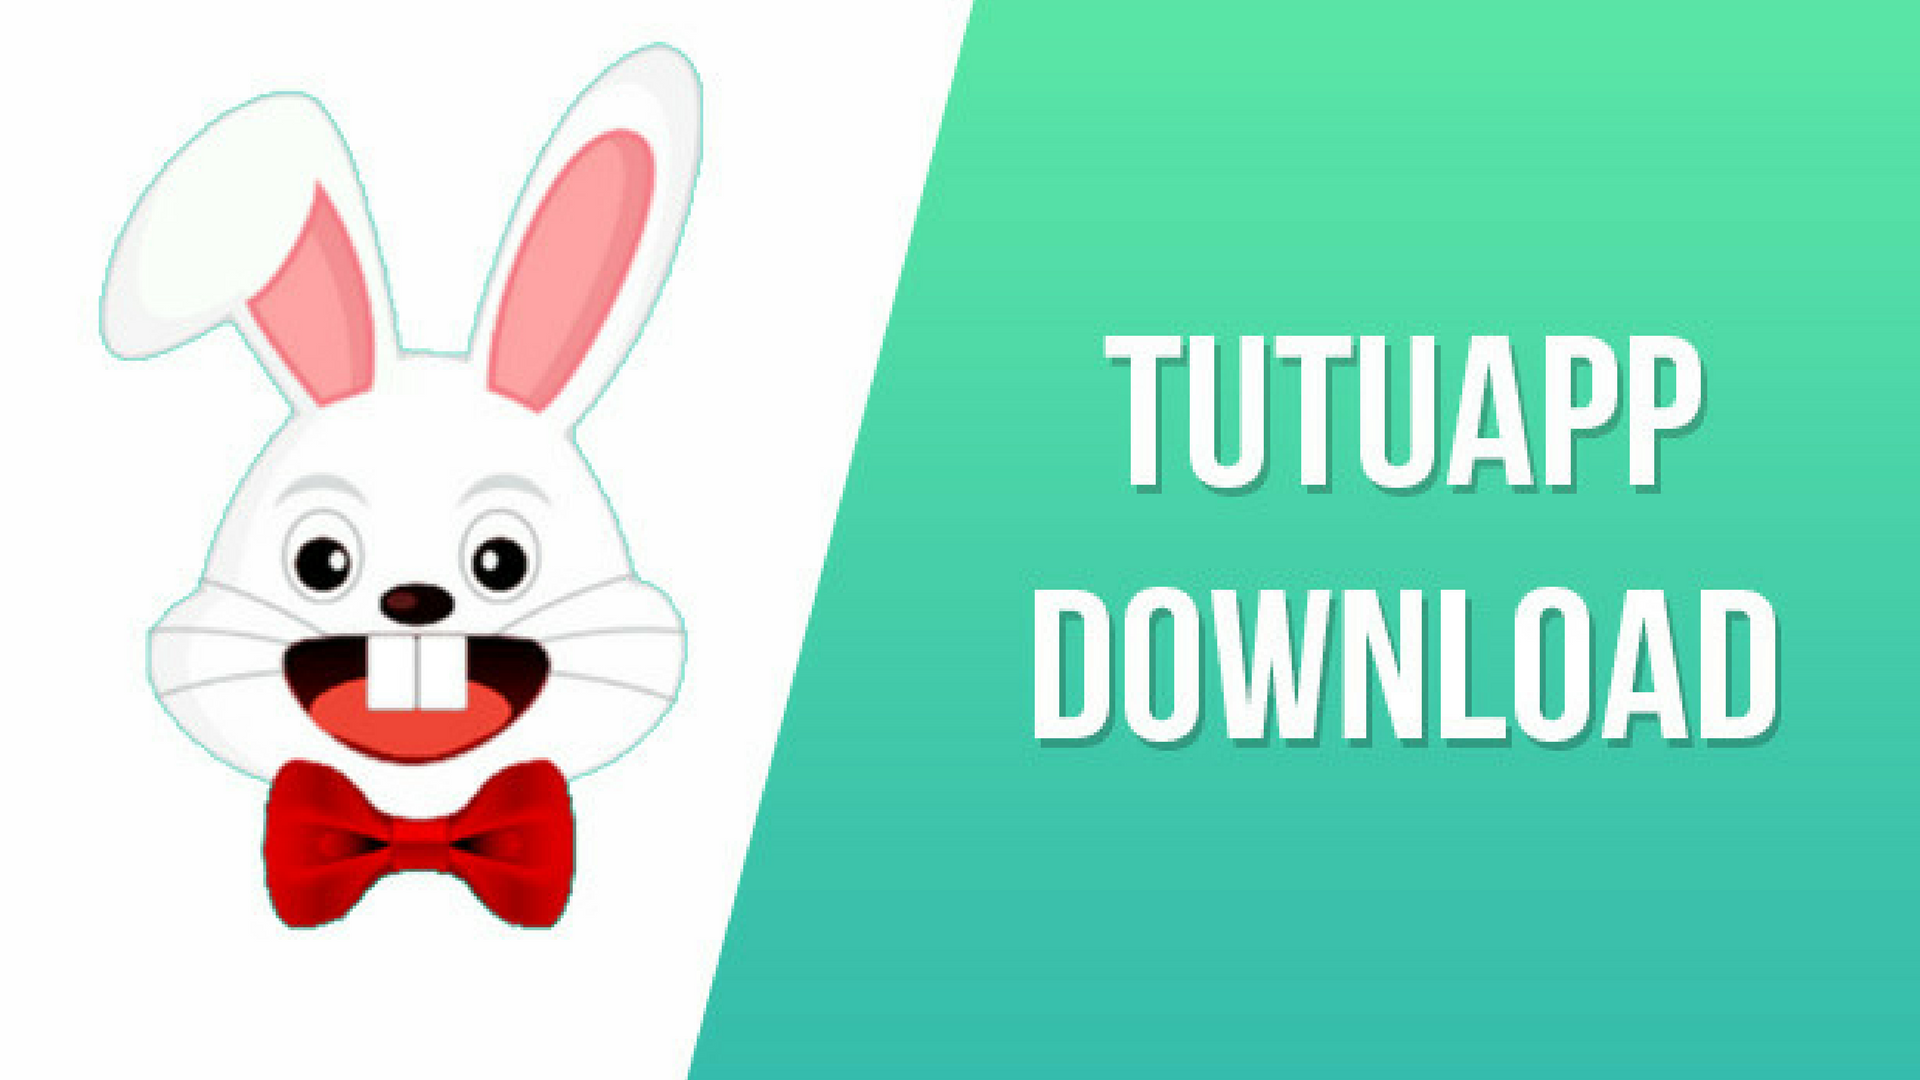 Alternate applications of TutuAppApk